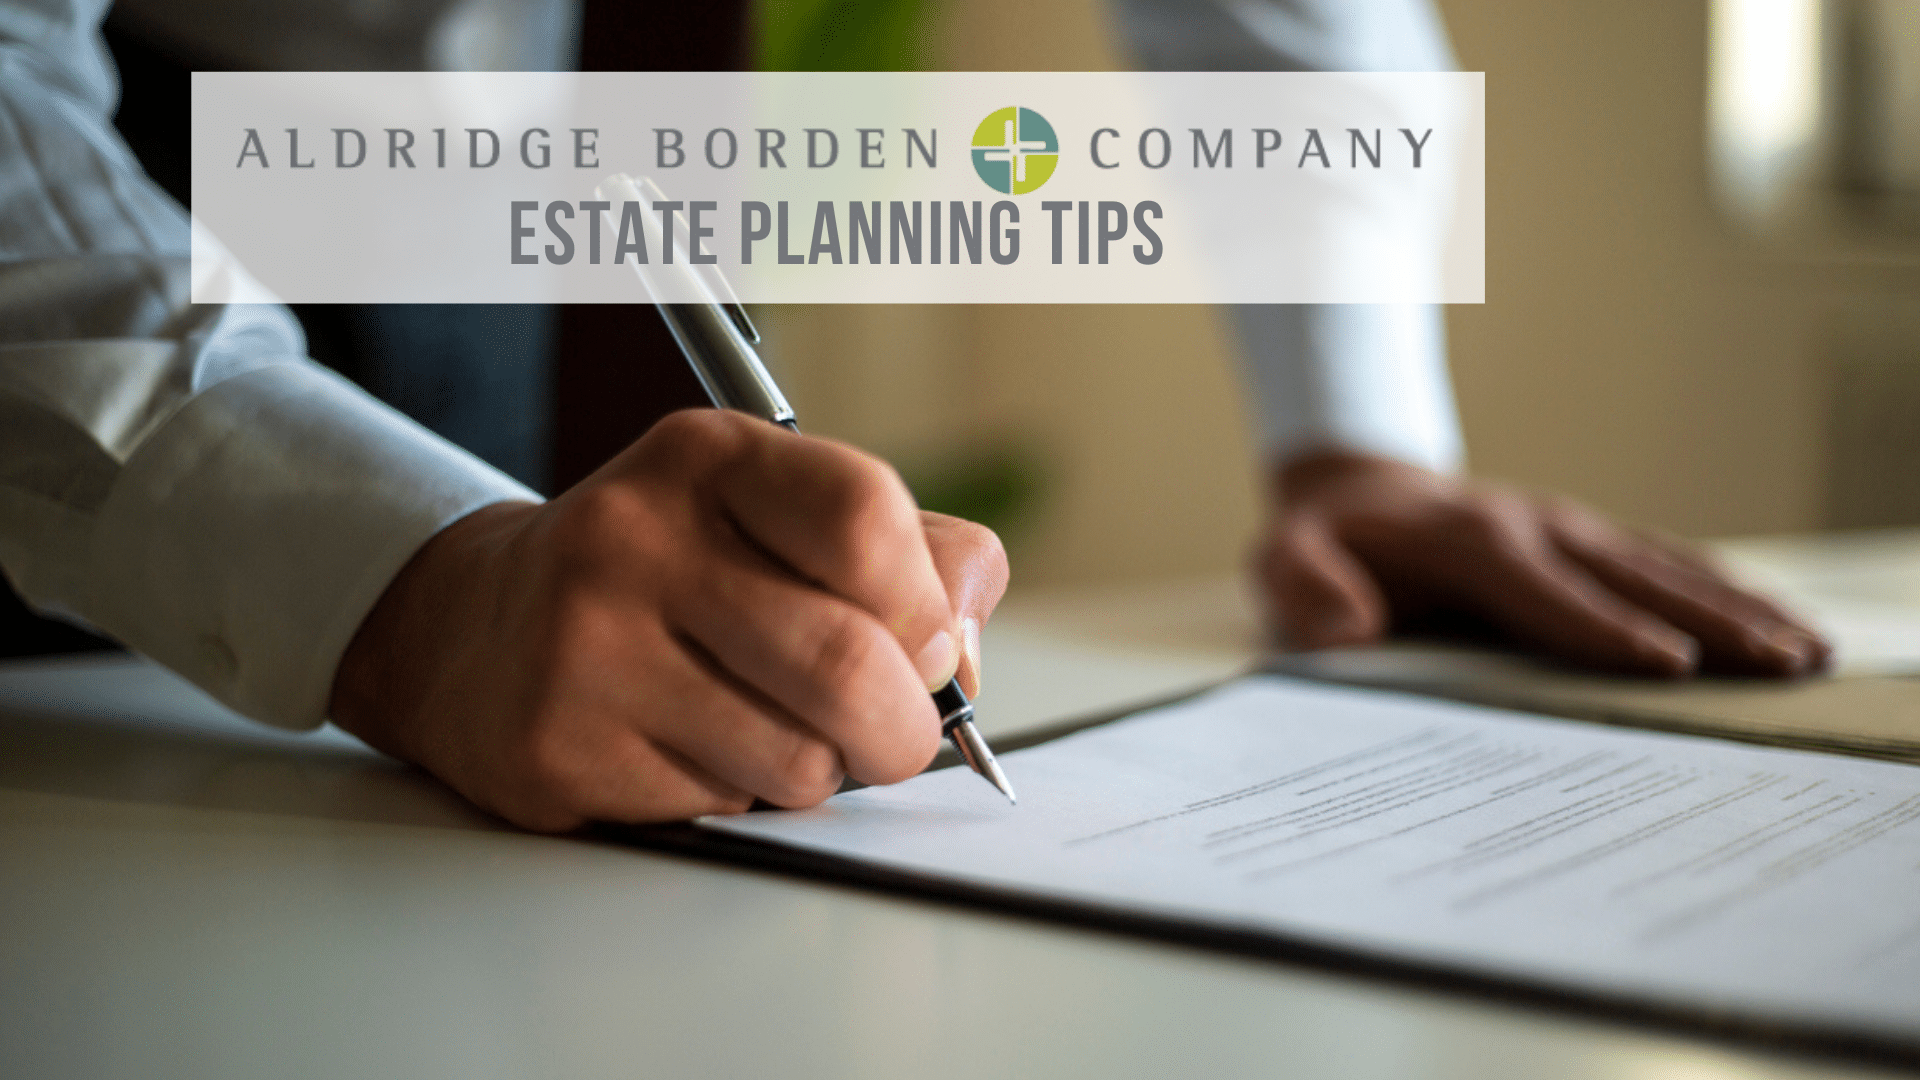 Leaving The Most For Loved Ones – Estate Planning Tips